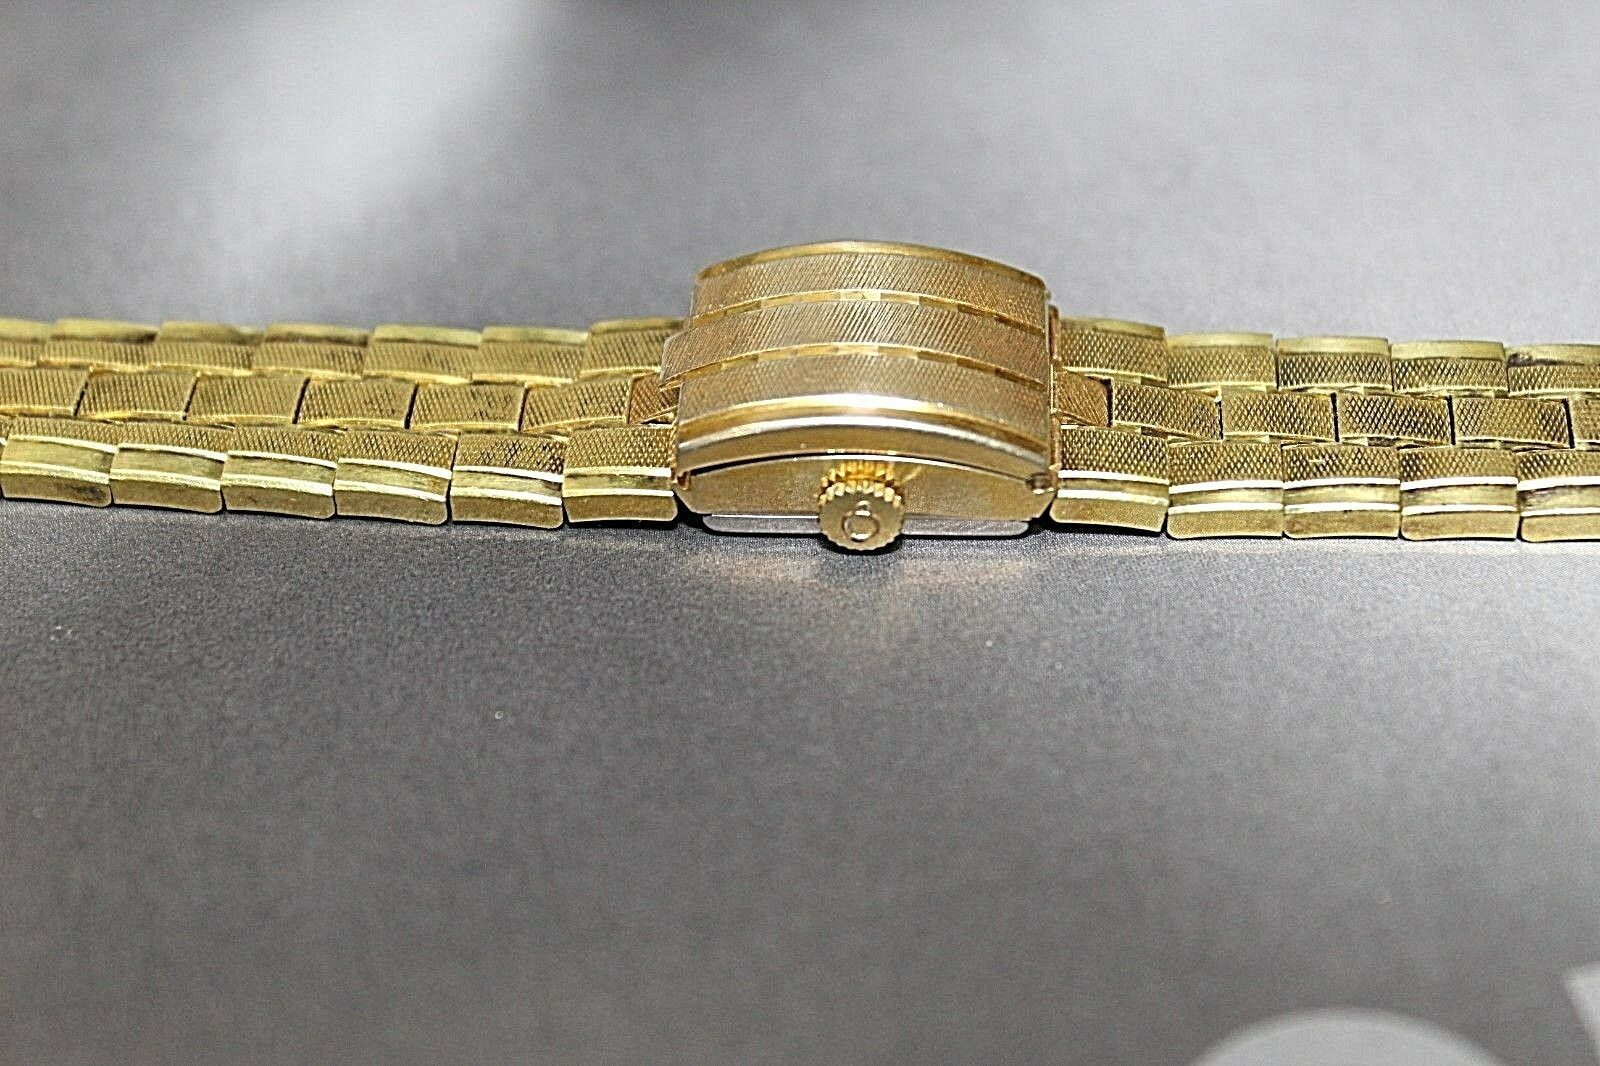 RARE VINTAGE ENICAR 17 JEWELS  WATCH SWISS MADE GOLD TONE WITH COVER BRACELET